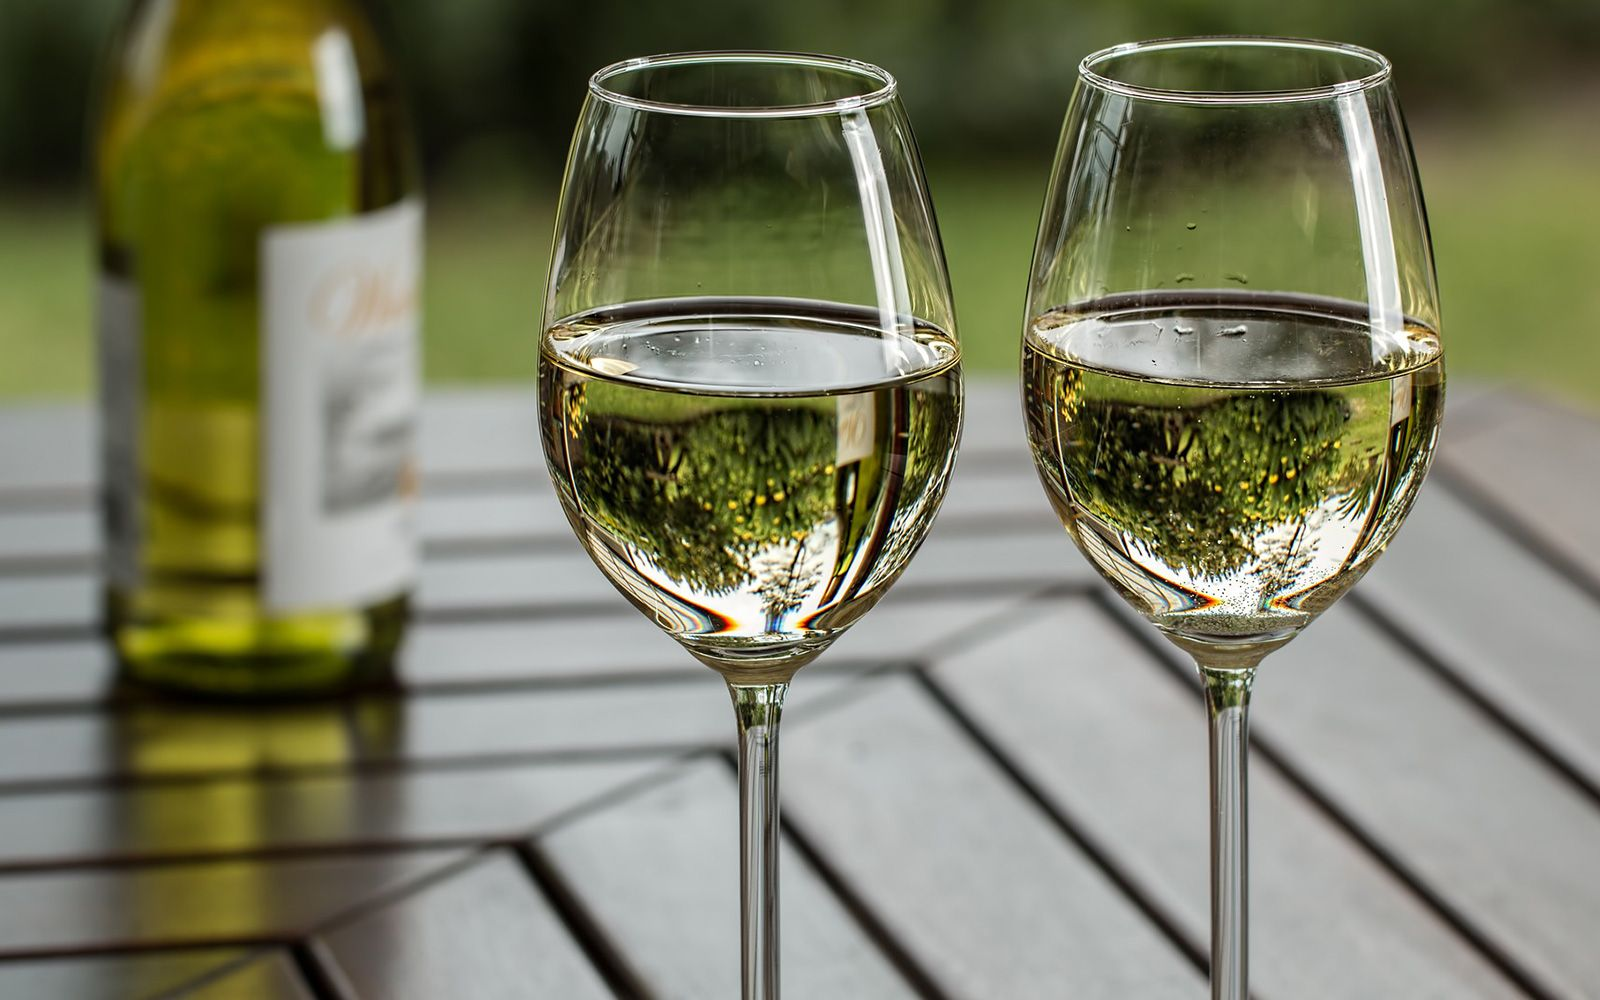 What Do Your Genes Say About Your Wine Choices?